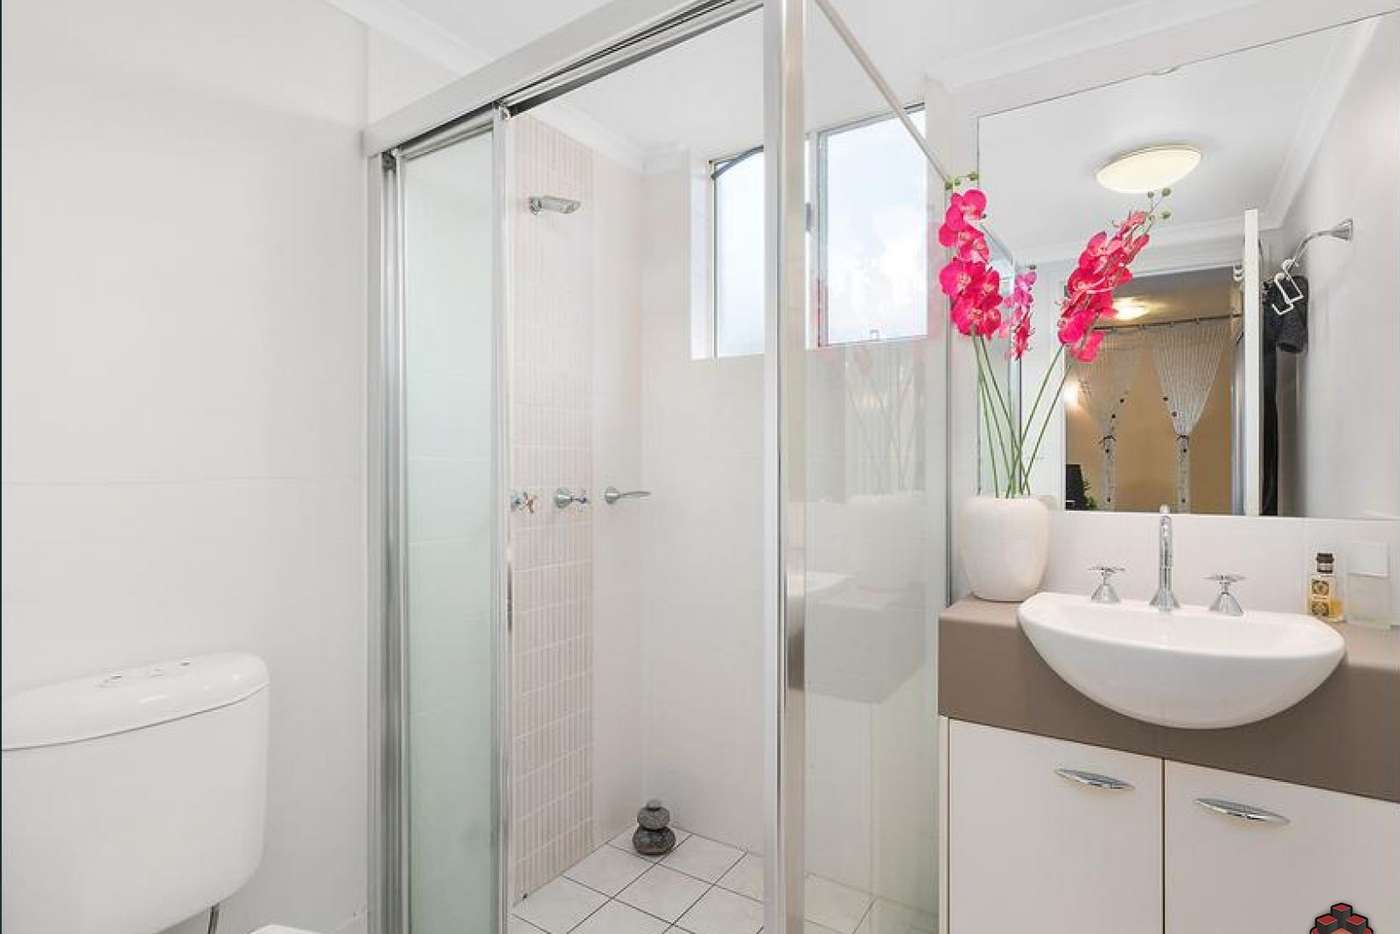 Seventh view of Homely apartment listing, ID:21067858/15 -164 Spence Street, Bungalow QLD 4870